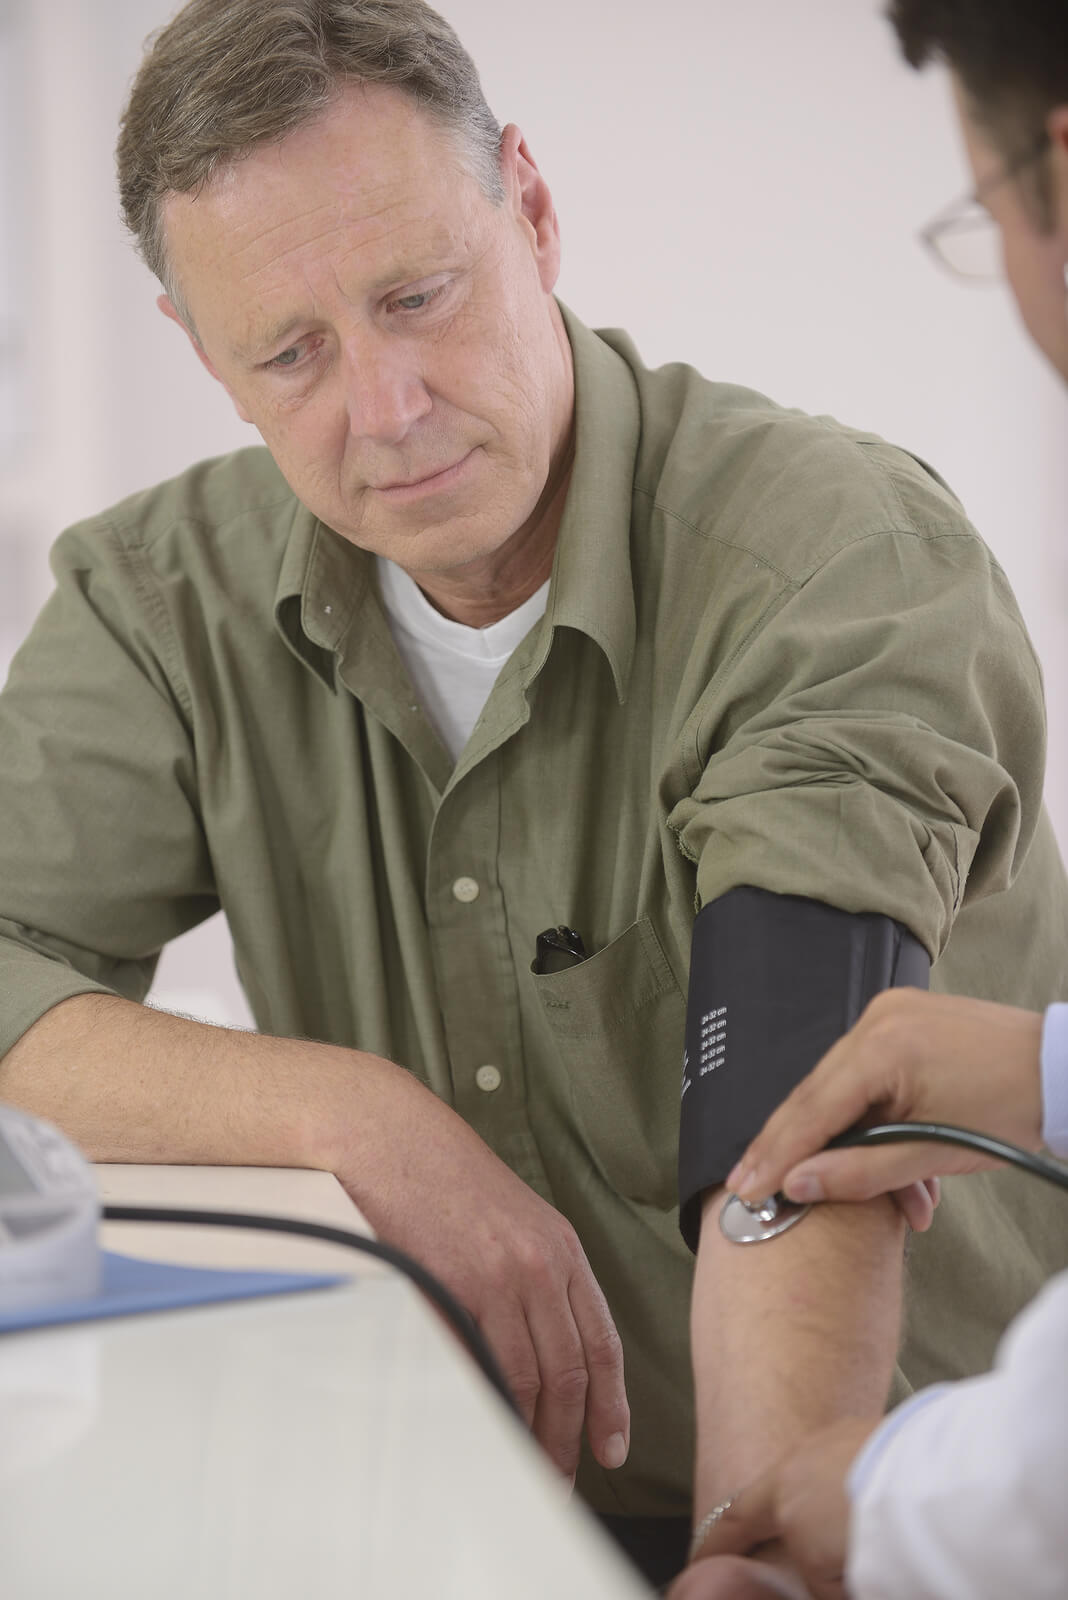 Man taking a Blood Pressure test